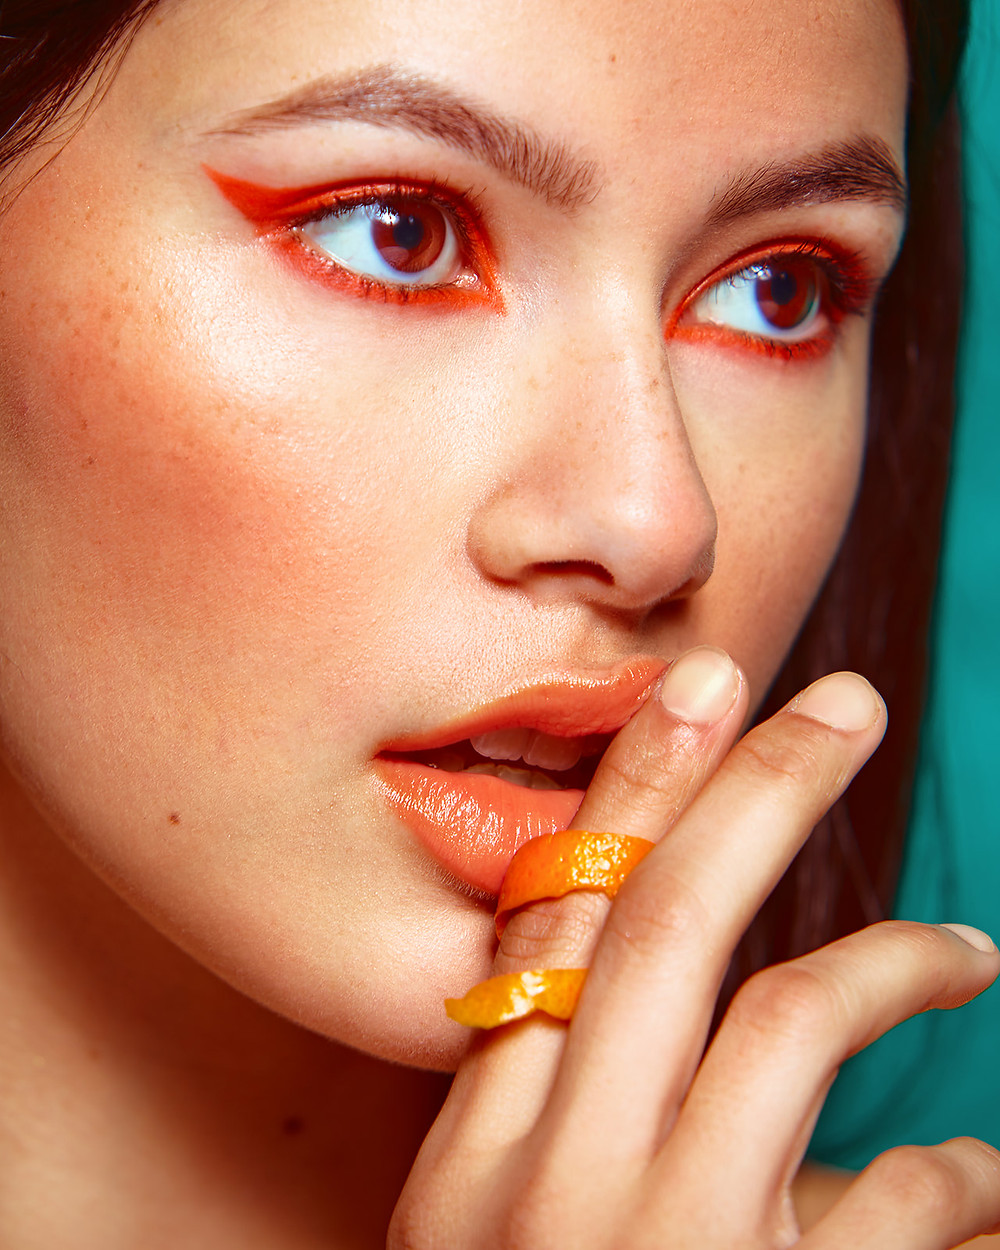 Model Genevieve van Dam wears an orange peel ring on her finger in a fruit-inspired beauty editorial photo shoot published in New Face Fashion Magazine and photographed by commercial and fashion photographer Patrick Patton.